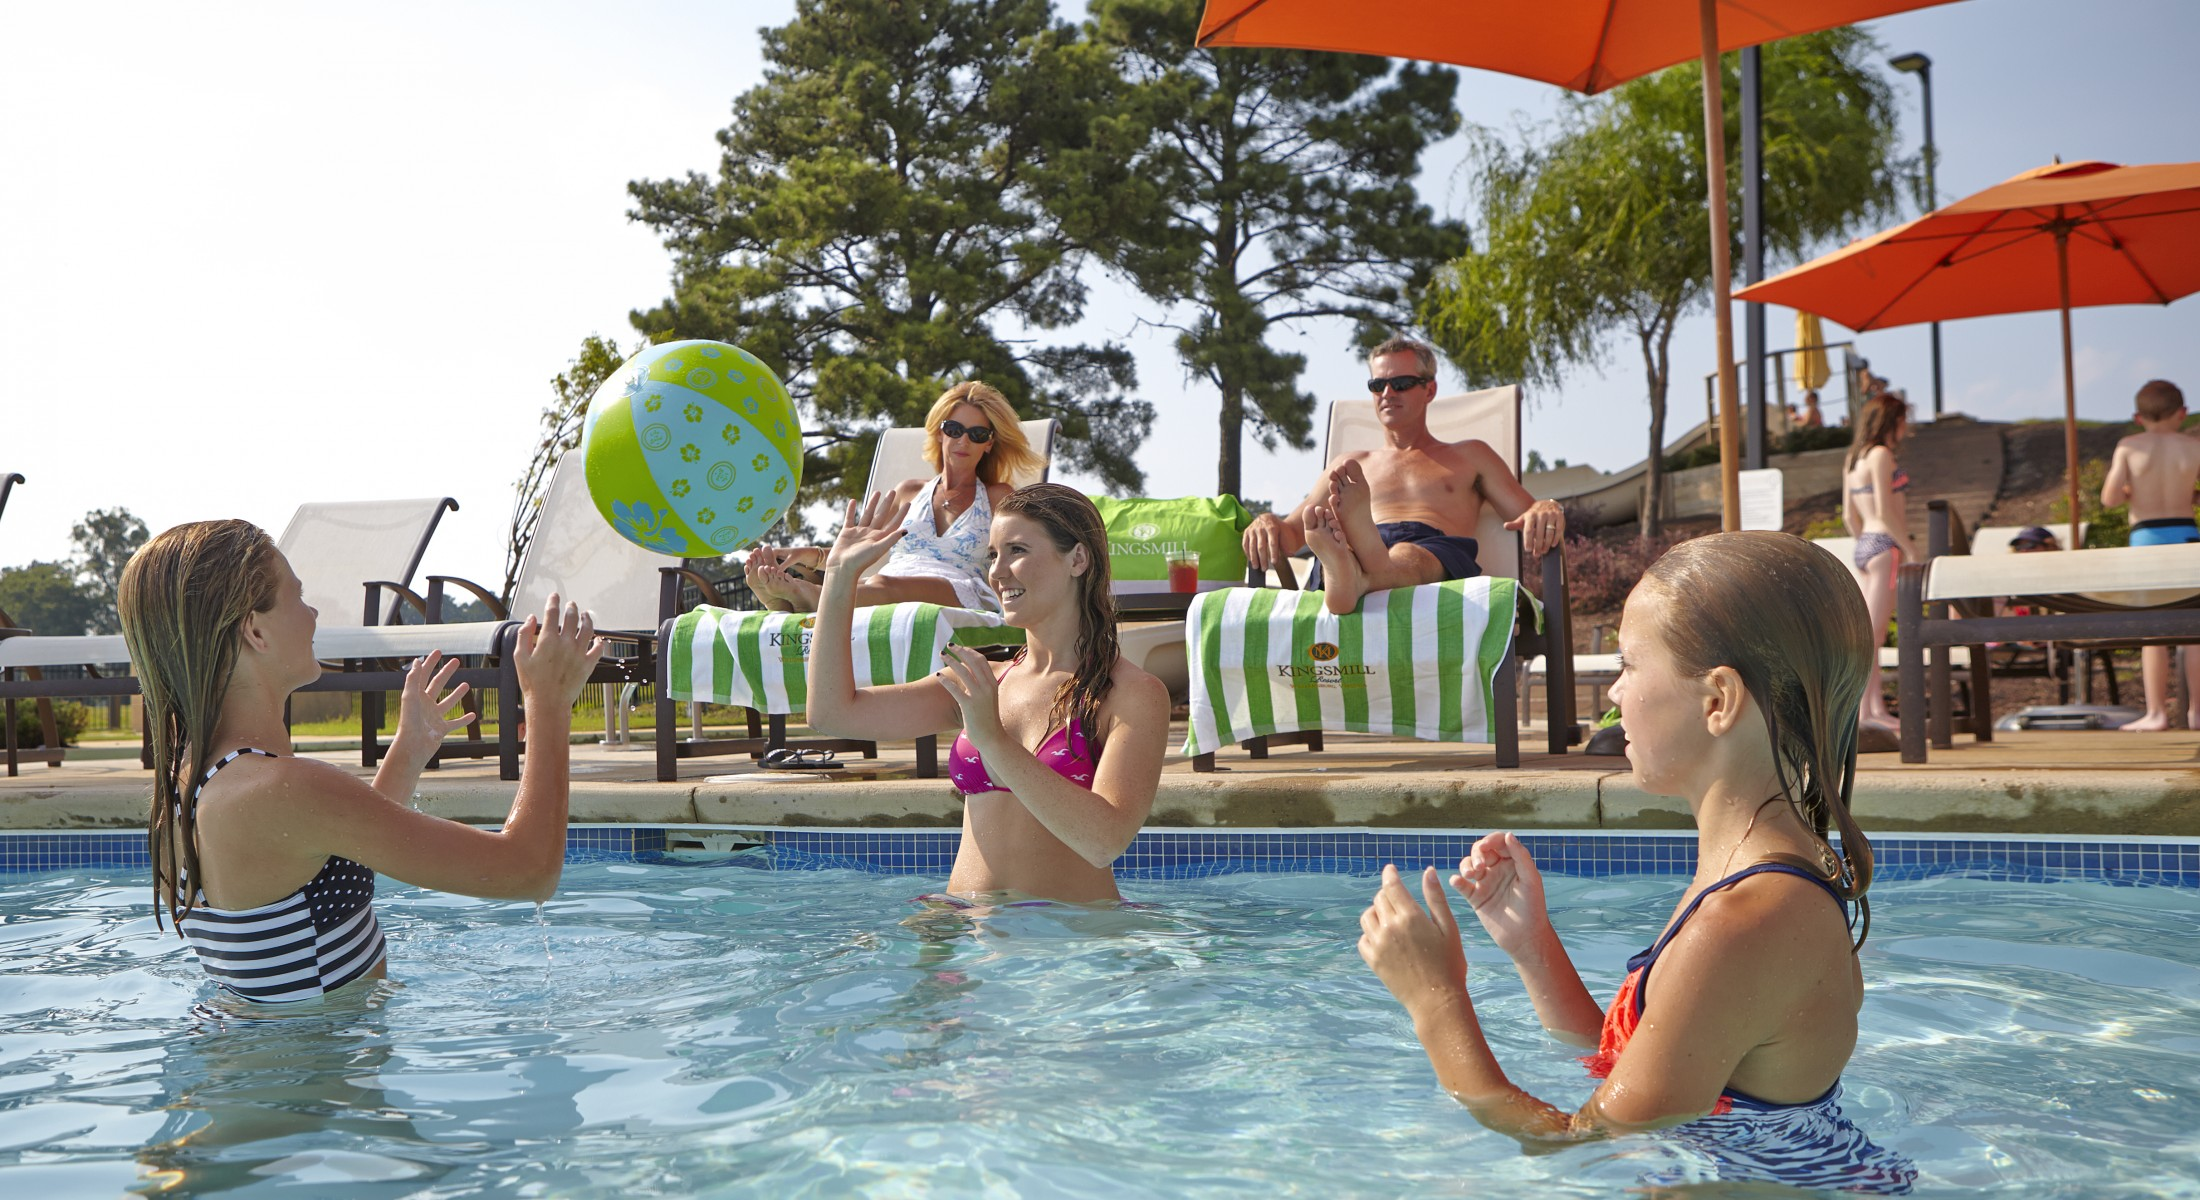 3 Girls Playing with Beach Ball in Pool